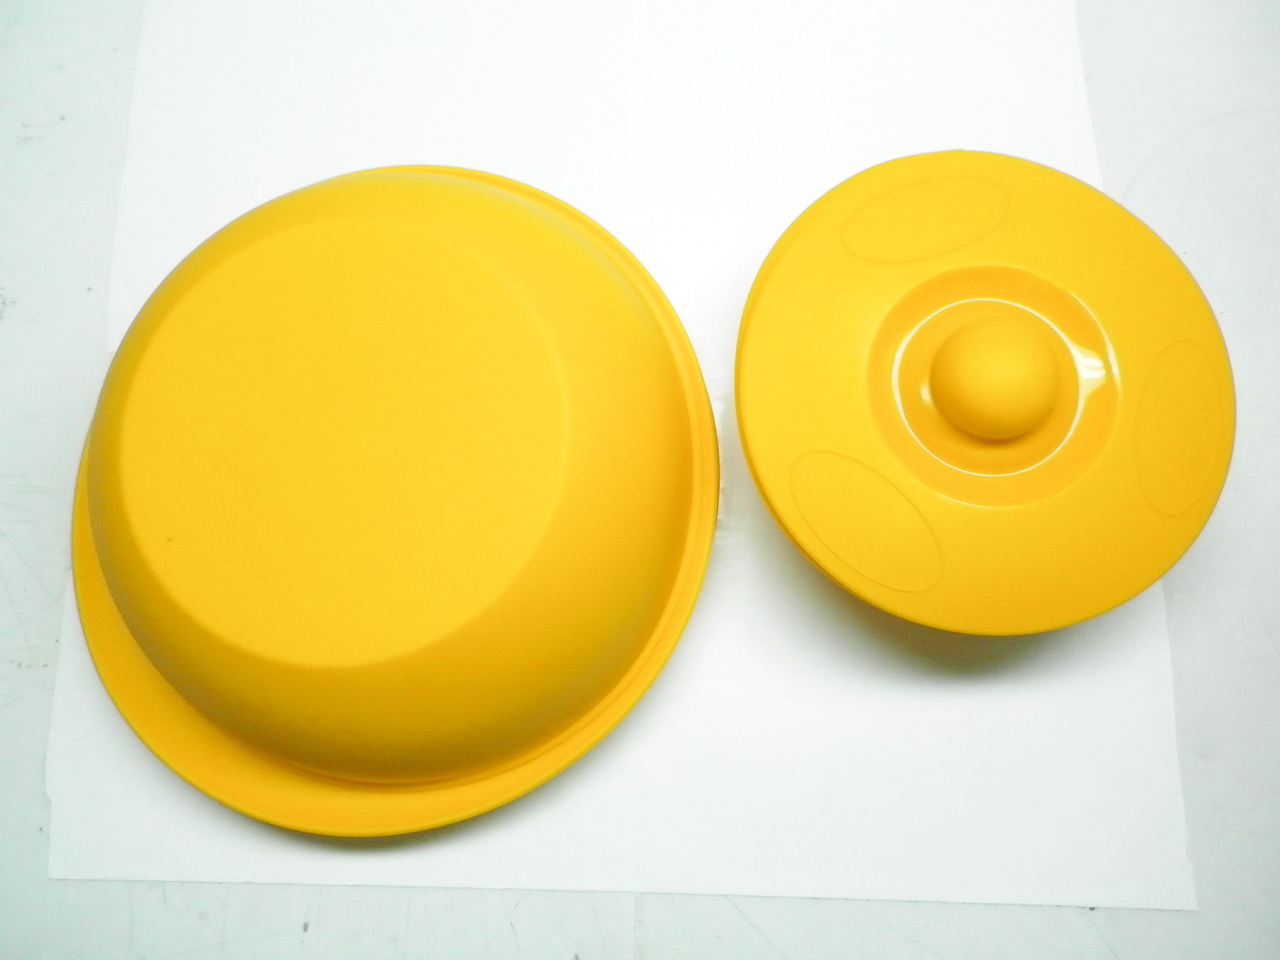 http://www.refinehksilicone.cn/data/images/product/20180418100324_198.jpg